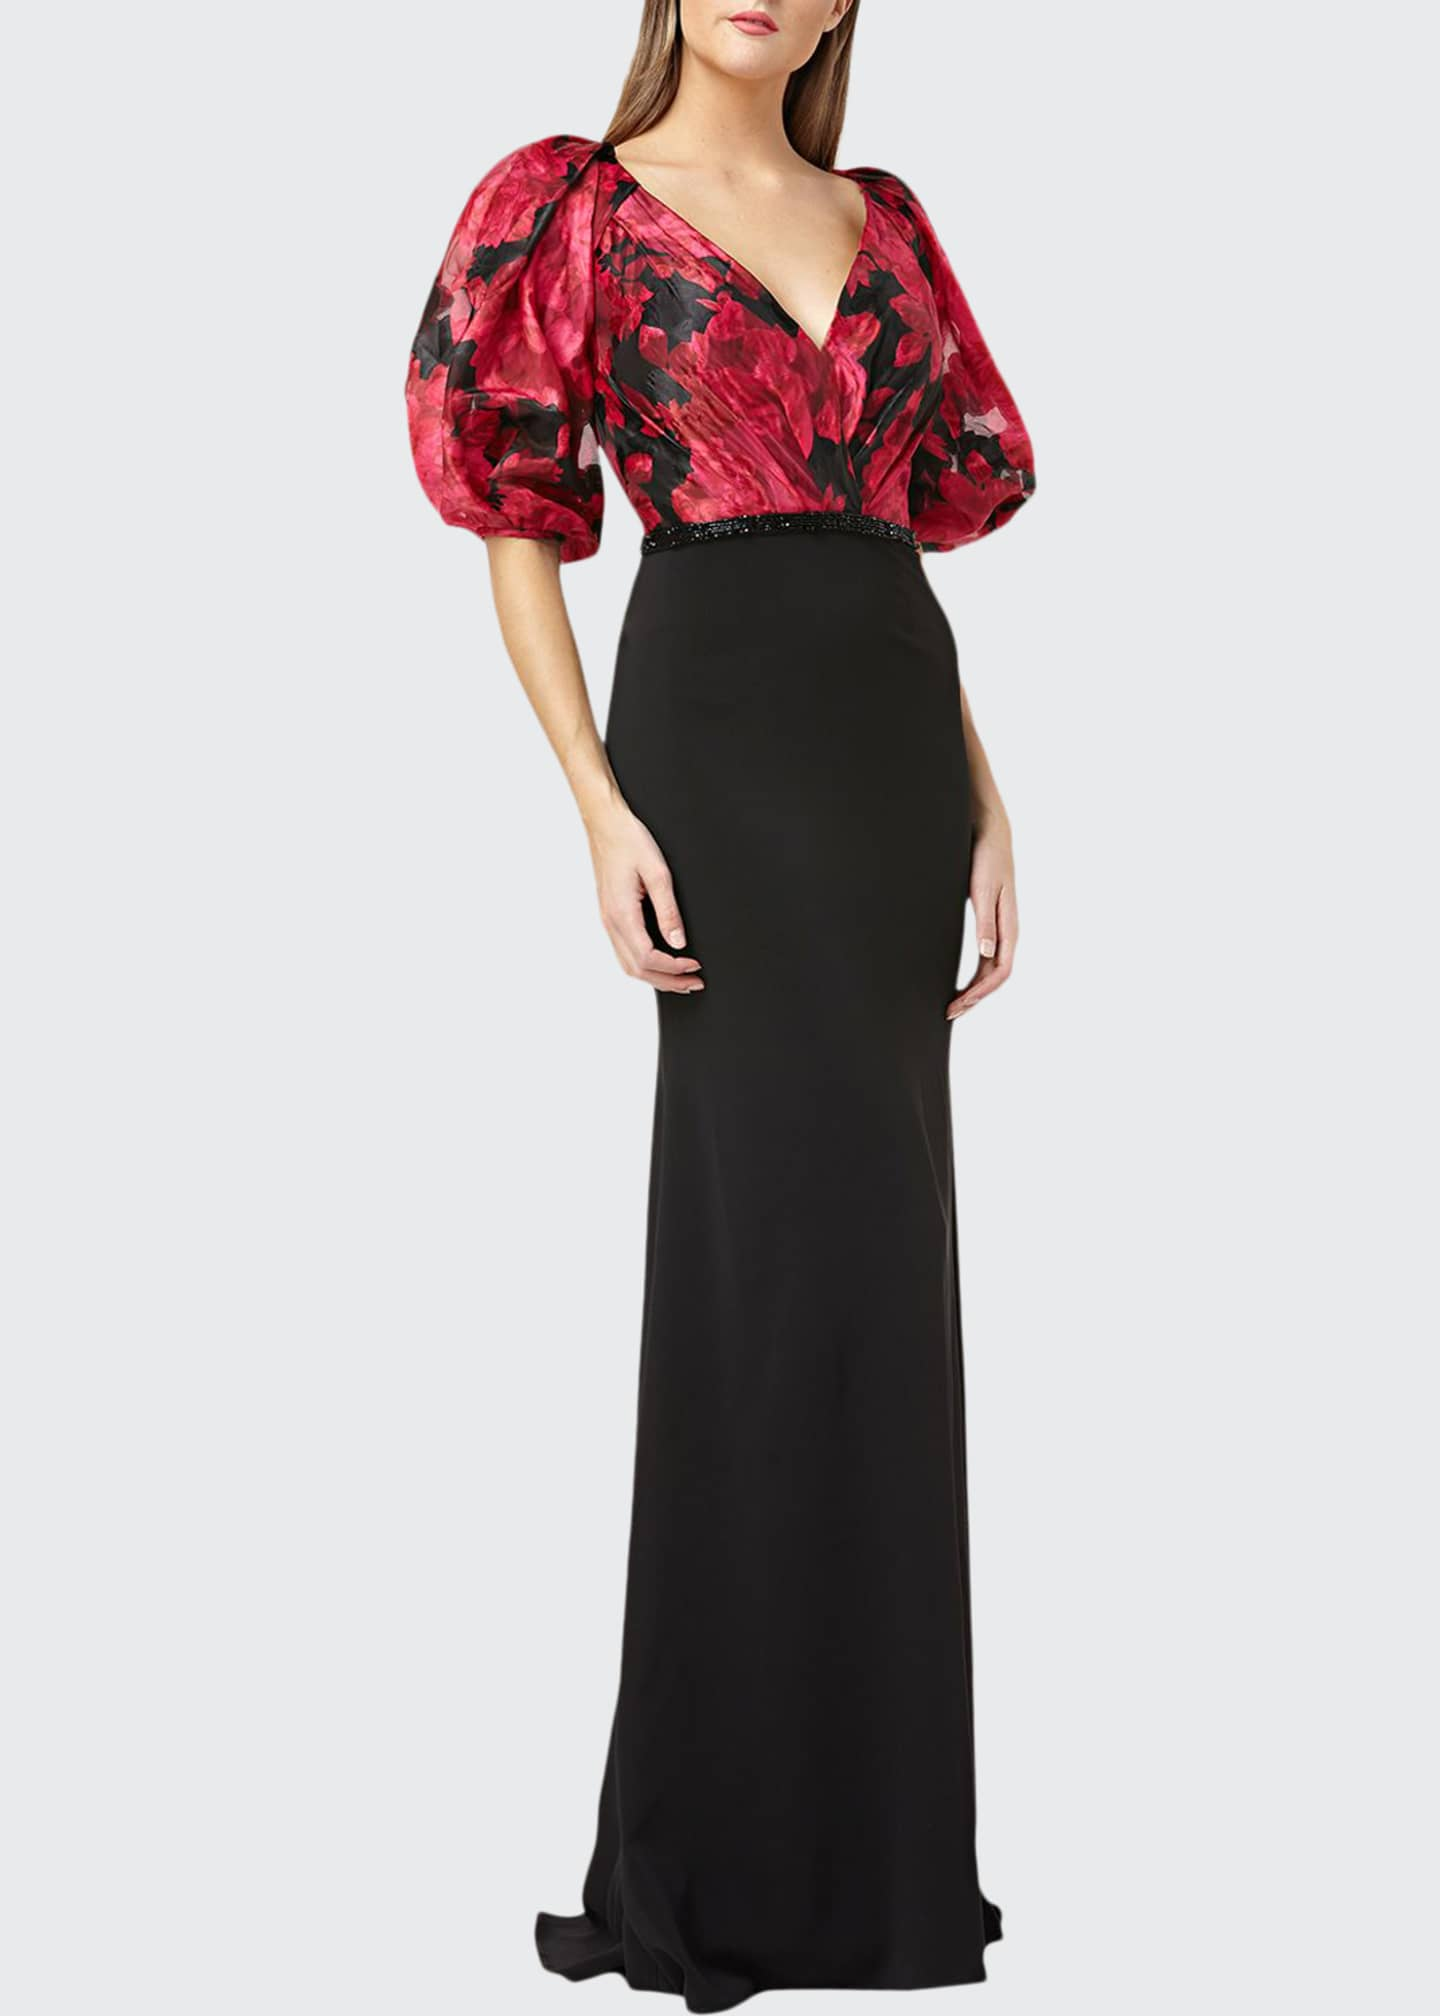 Carmen Marc Valvo Infusion Printed-Bodice Puff-Sleeve V-Neck Gown